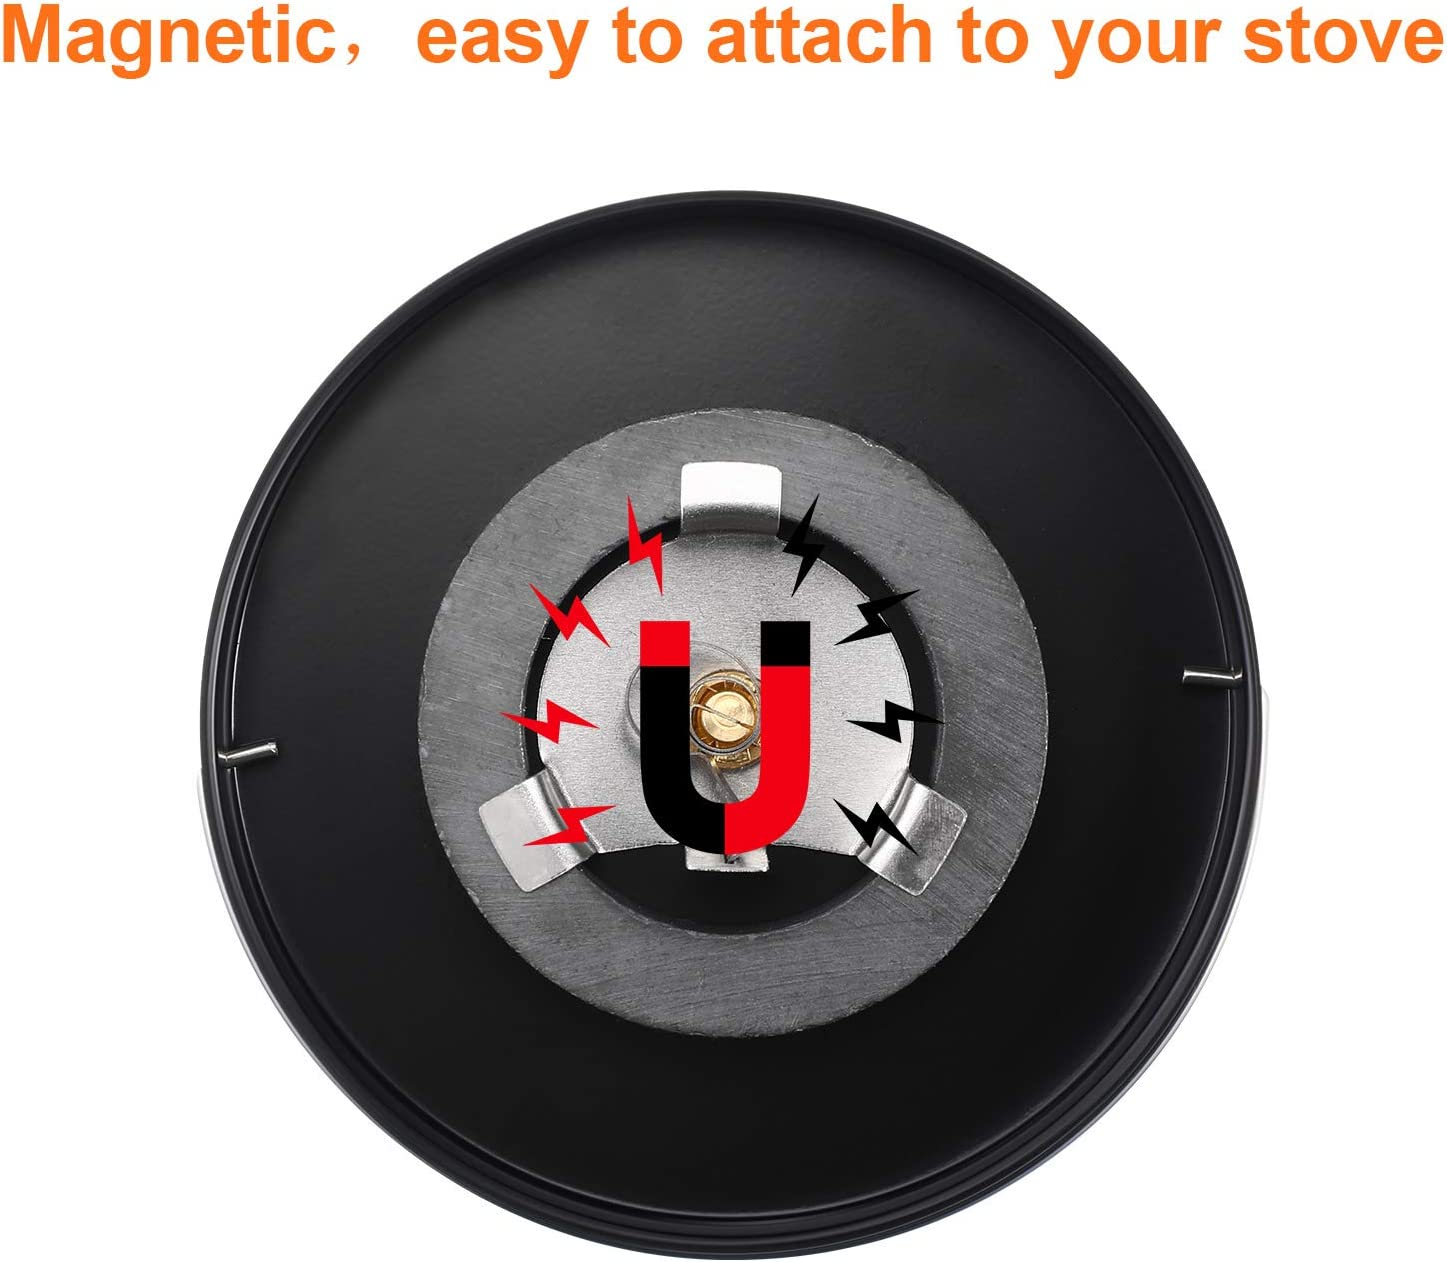 Magnetic Stove Thermometer Wood Burner Top Thermometer Stove Temperature Meter Stove Flue Pipe Thermometer Fireplace Accessories for Avoiding Stove Fan Damaged by Overheating 2